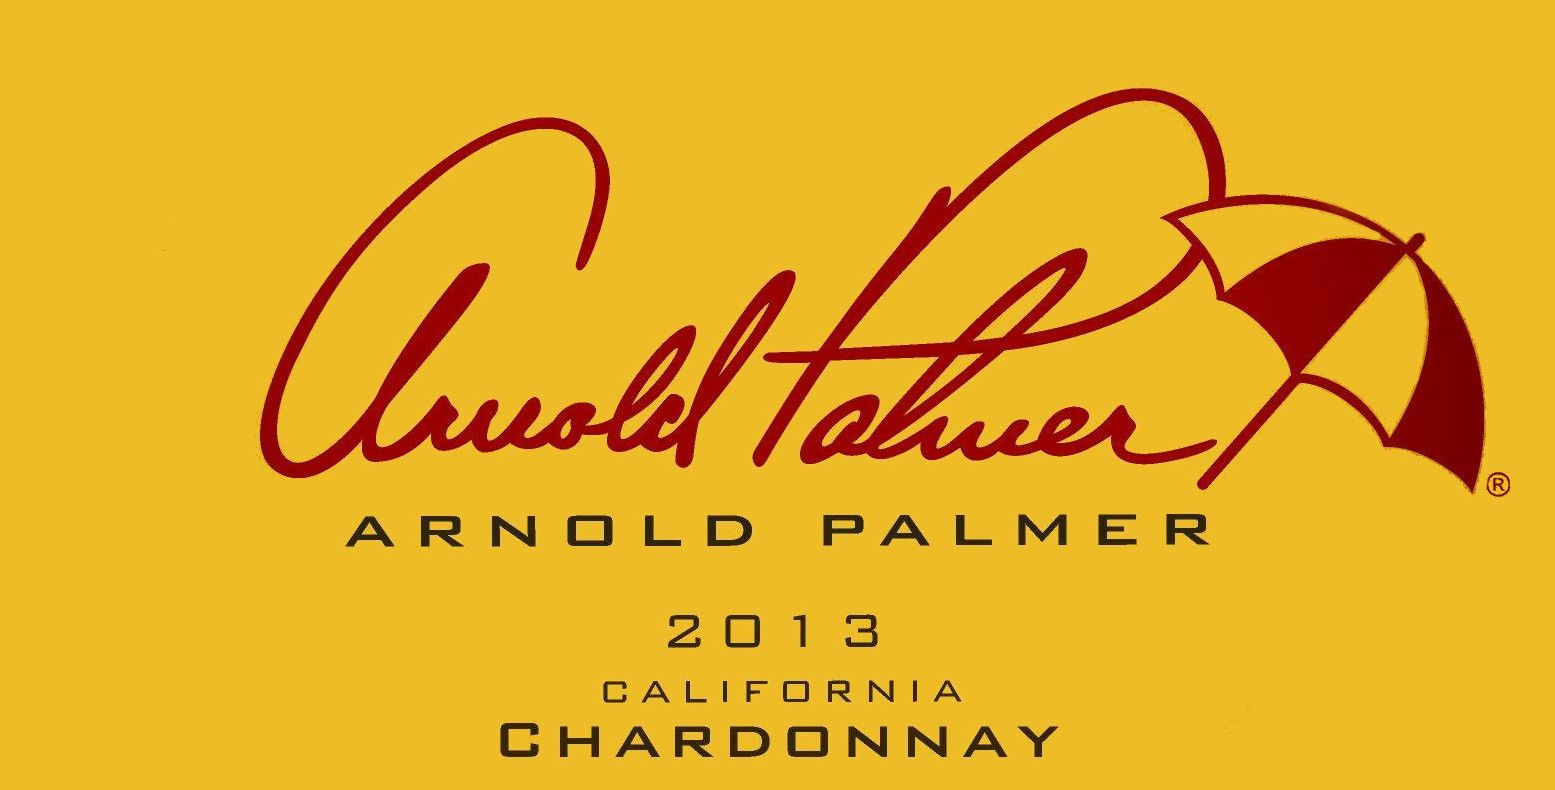 Arnold Palmer Chardonnay 2013 Front Label